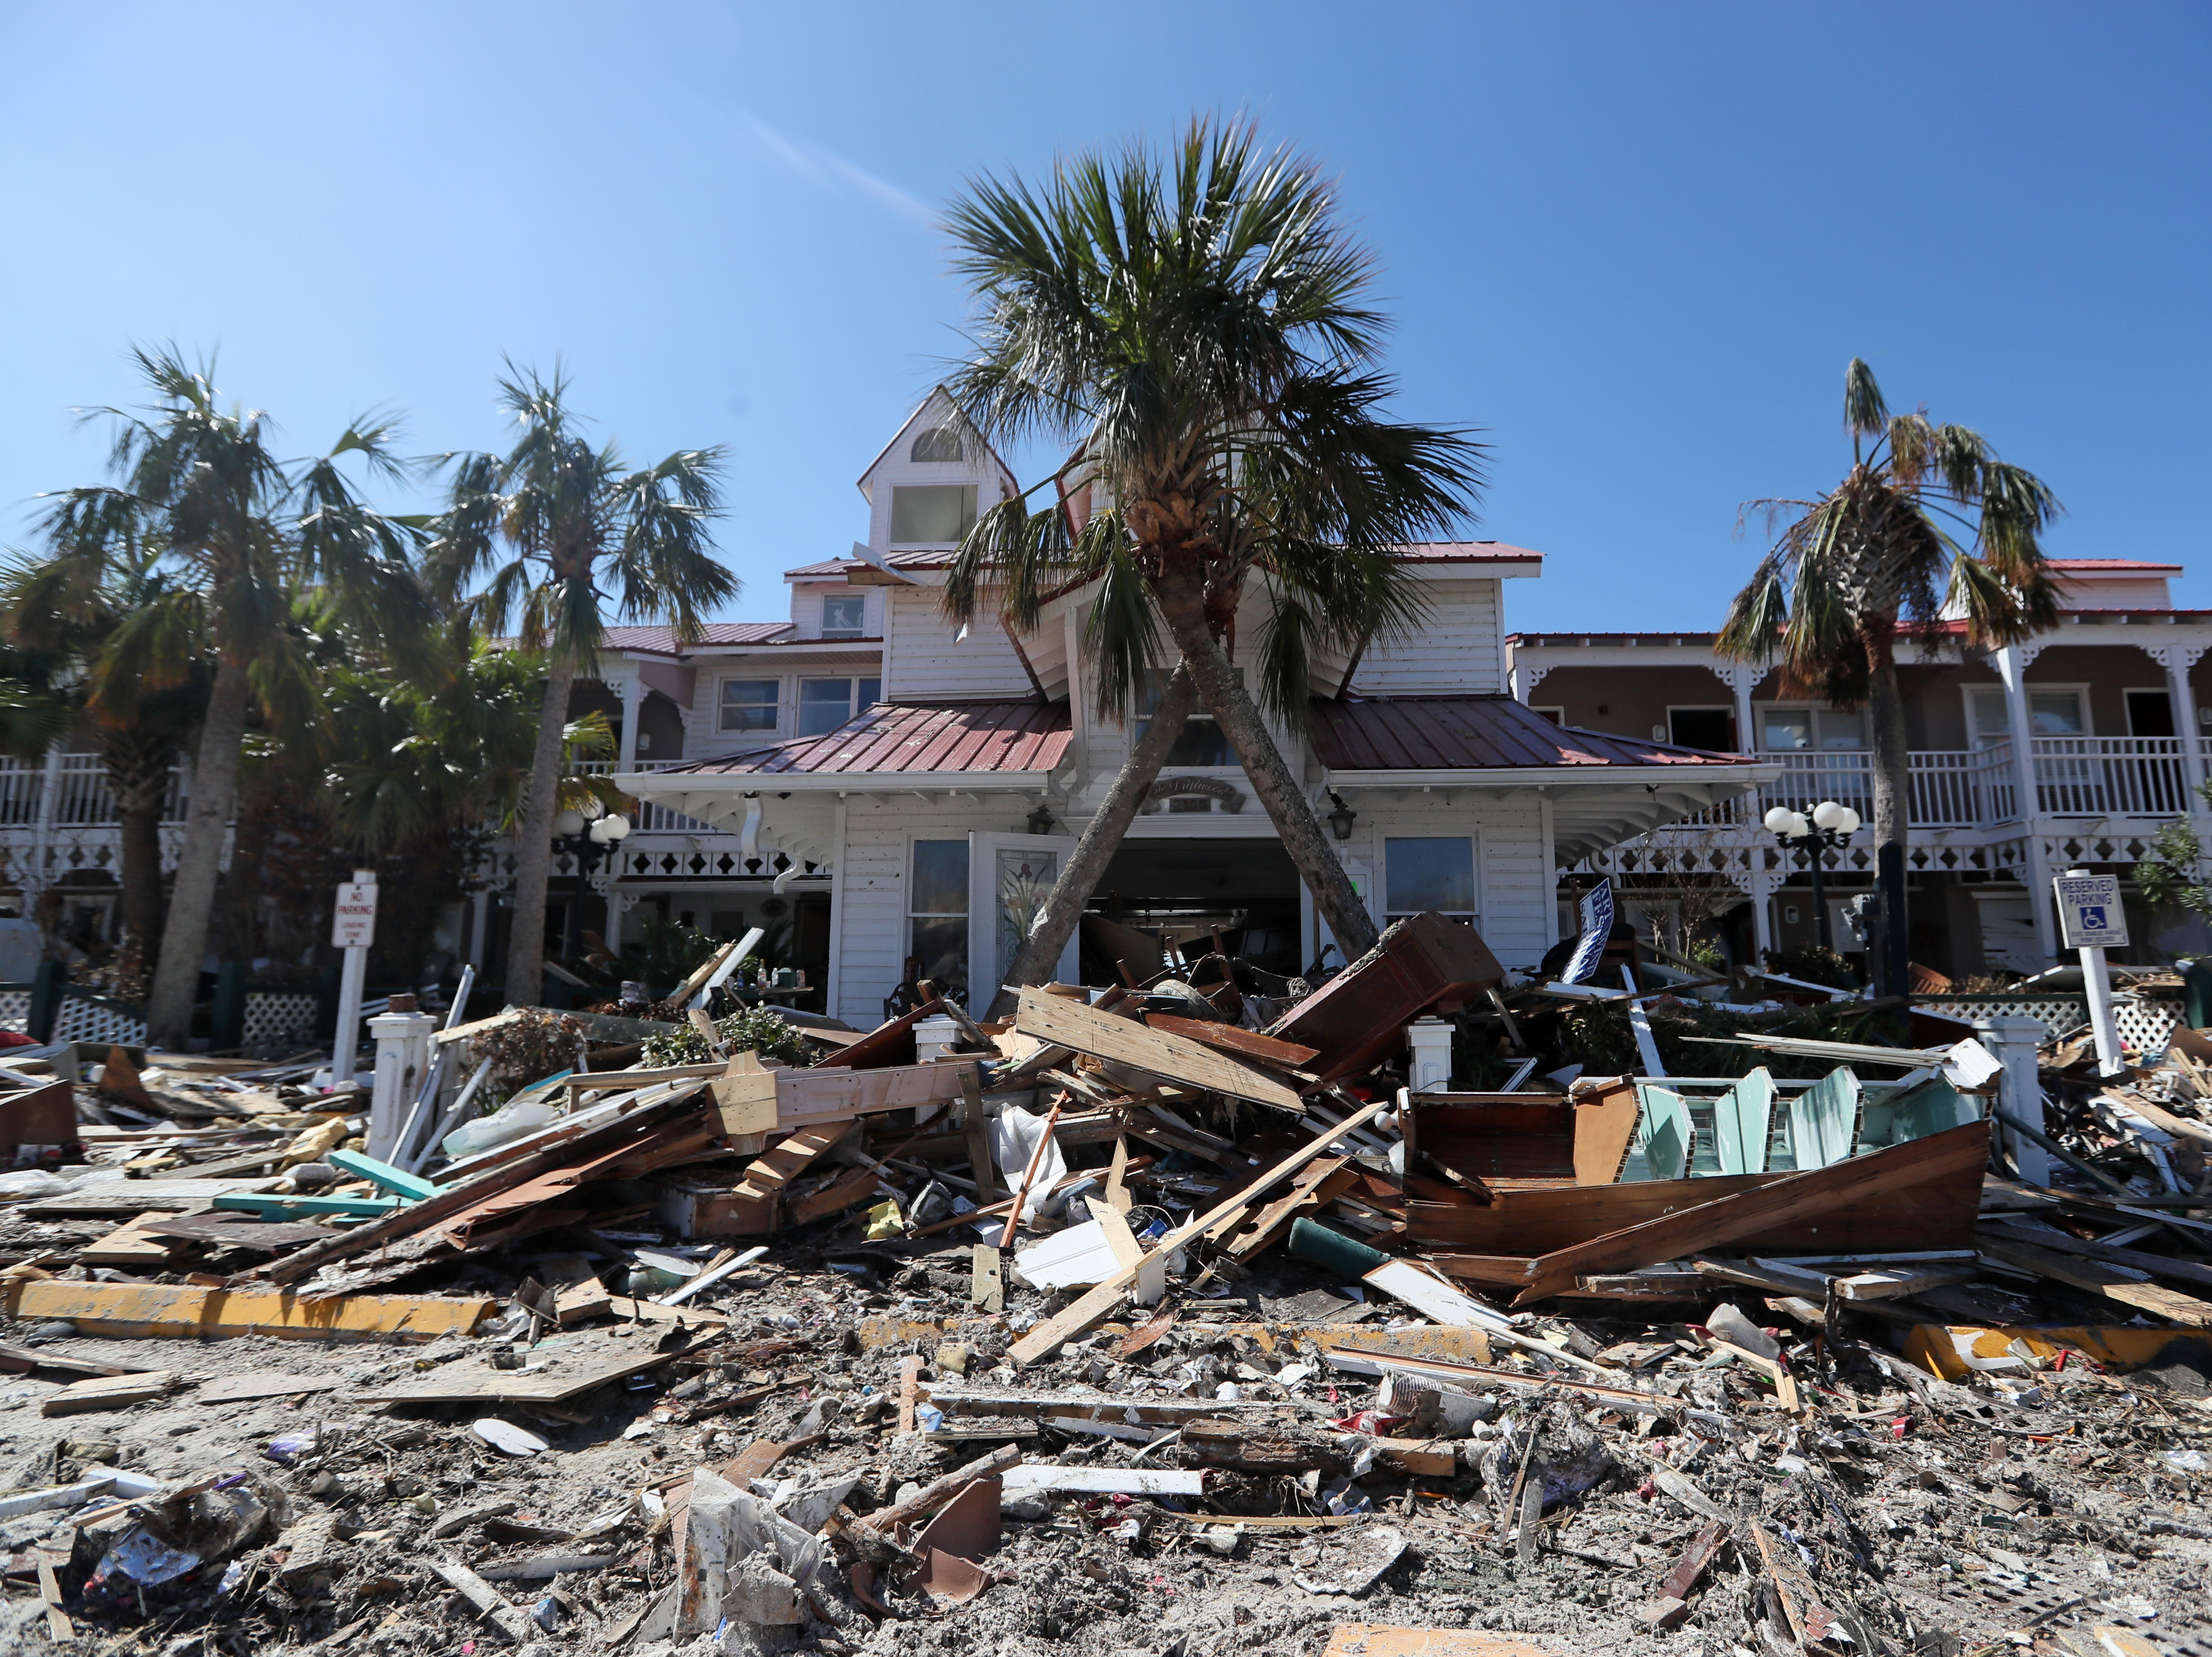 Scattered, broken homes litter the front of the Driftwood hotel in Mexico Beach on Wednesday, Oct. 17, 2018, one week after Hurricane Michael ripped through the coastal Florida town.